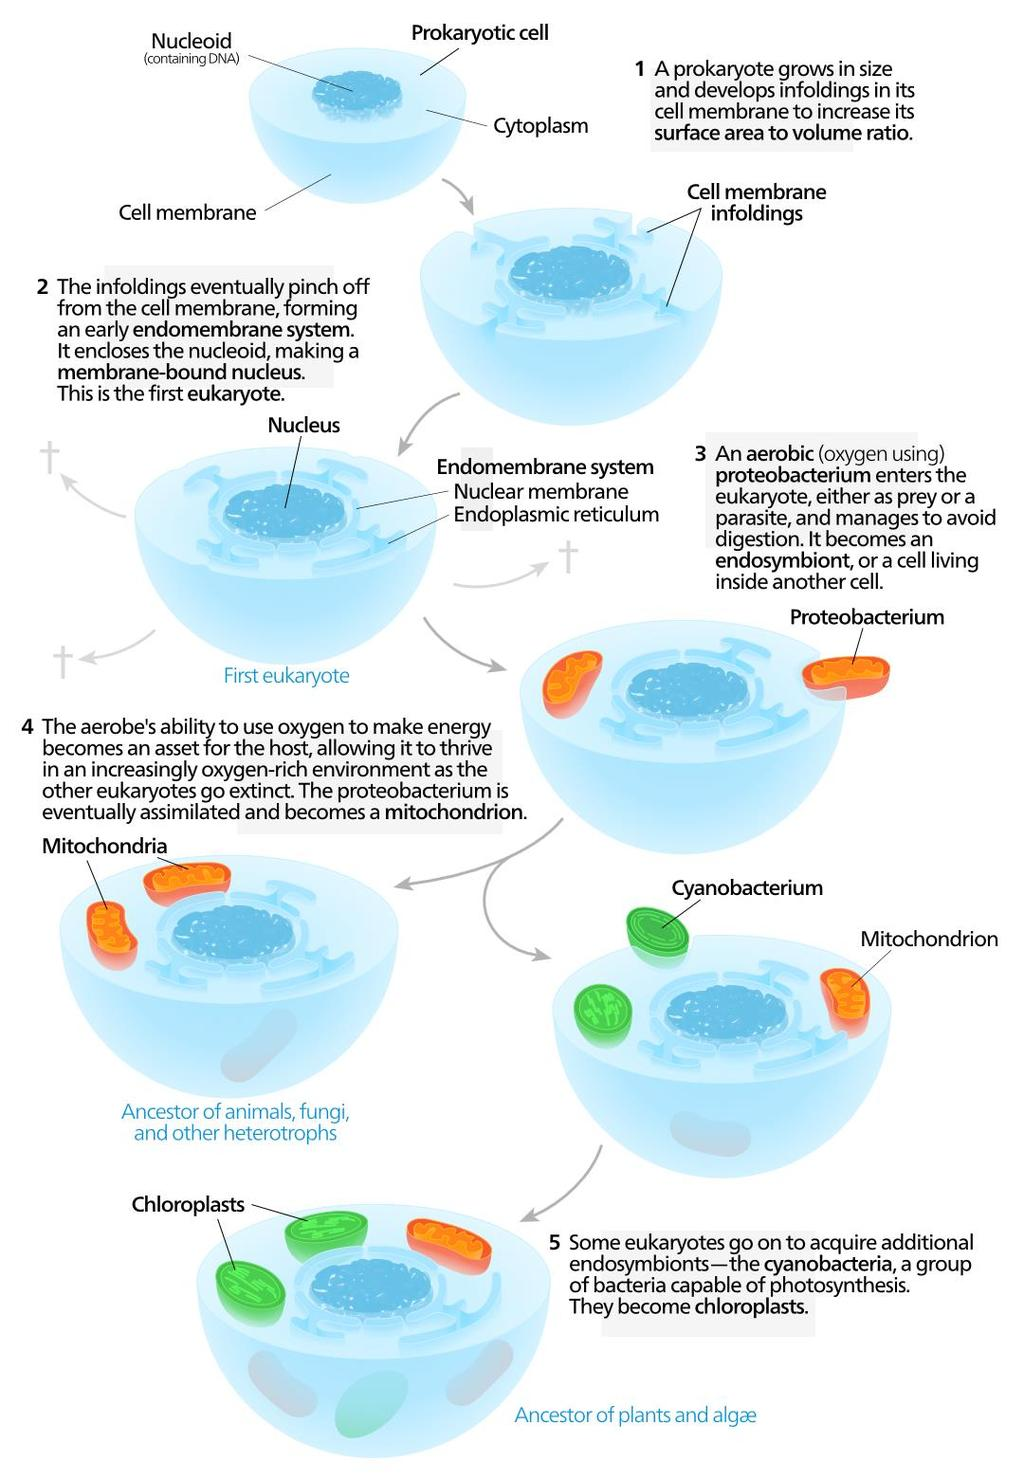 Endosymbiotic Theory Lynn Margulis proposed that certain organelles evolved from a symbiotic relationship between a host cell and early